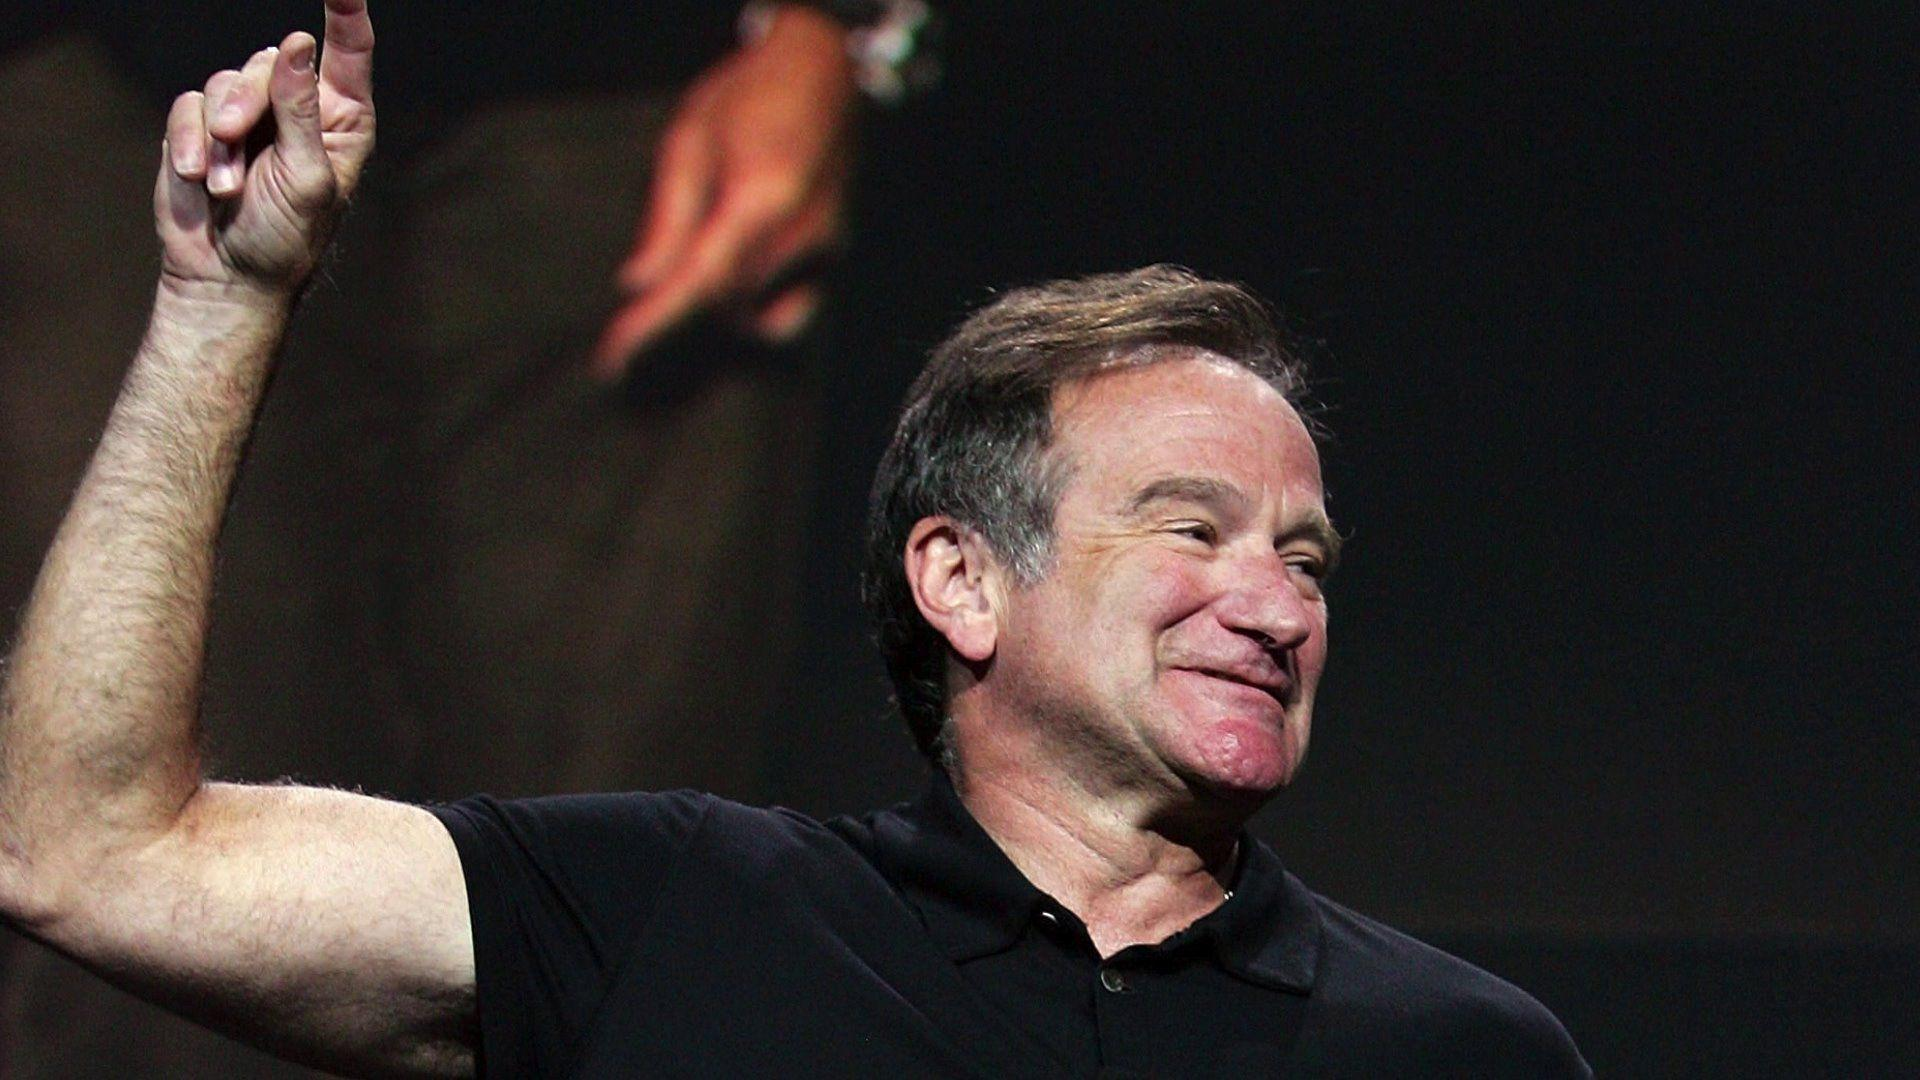 The famous Robin Williams shows his hand up wallpapers and images ...